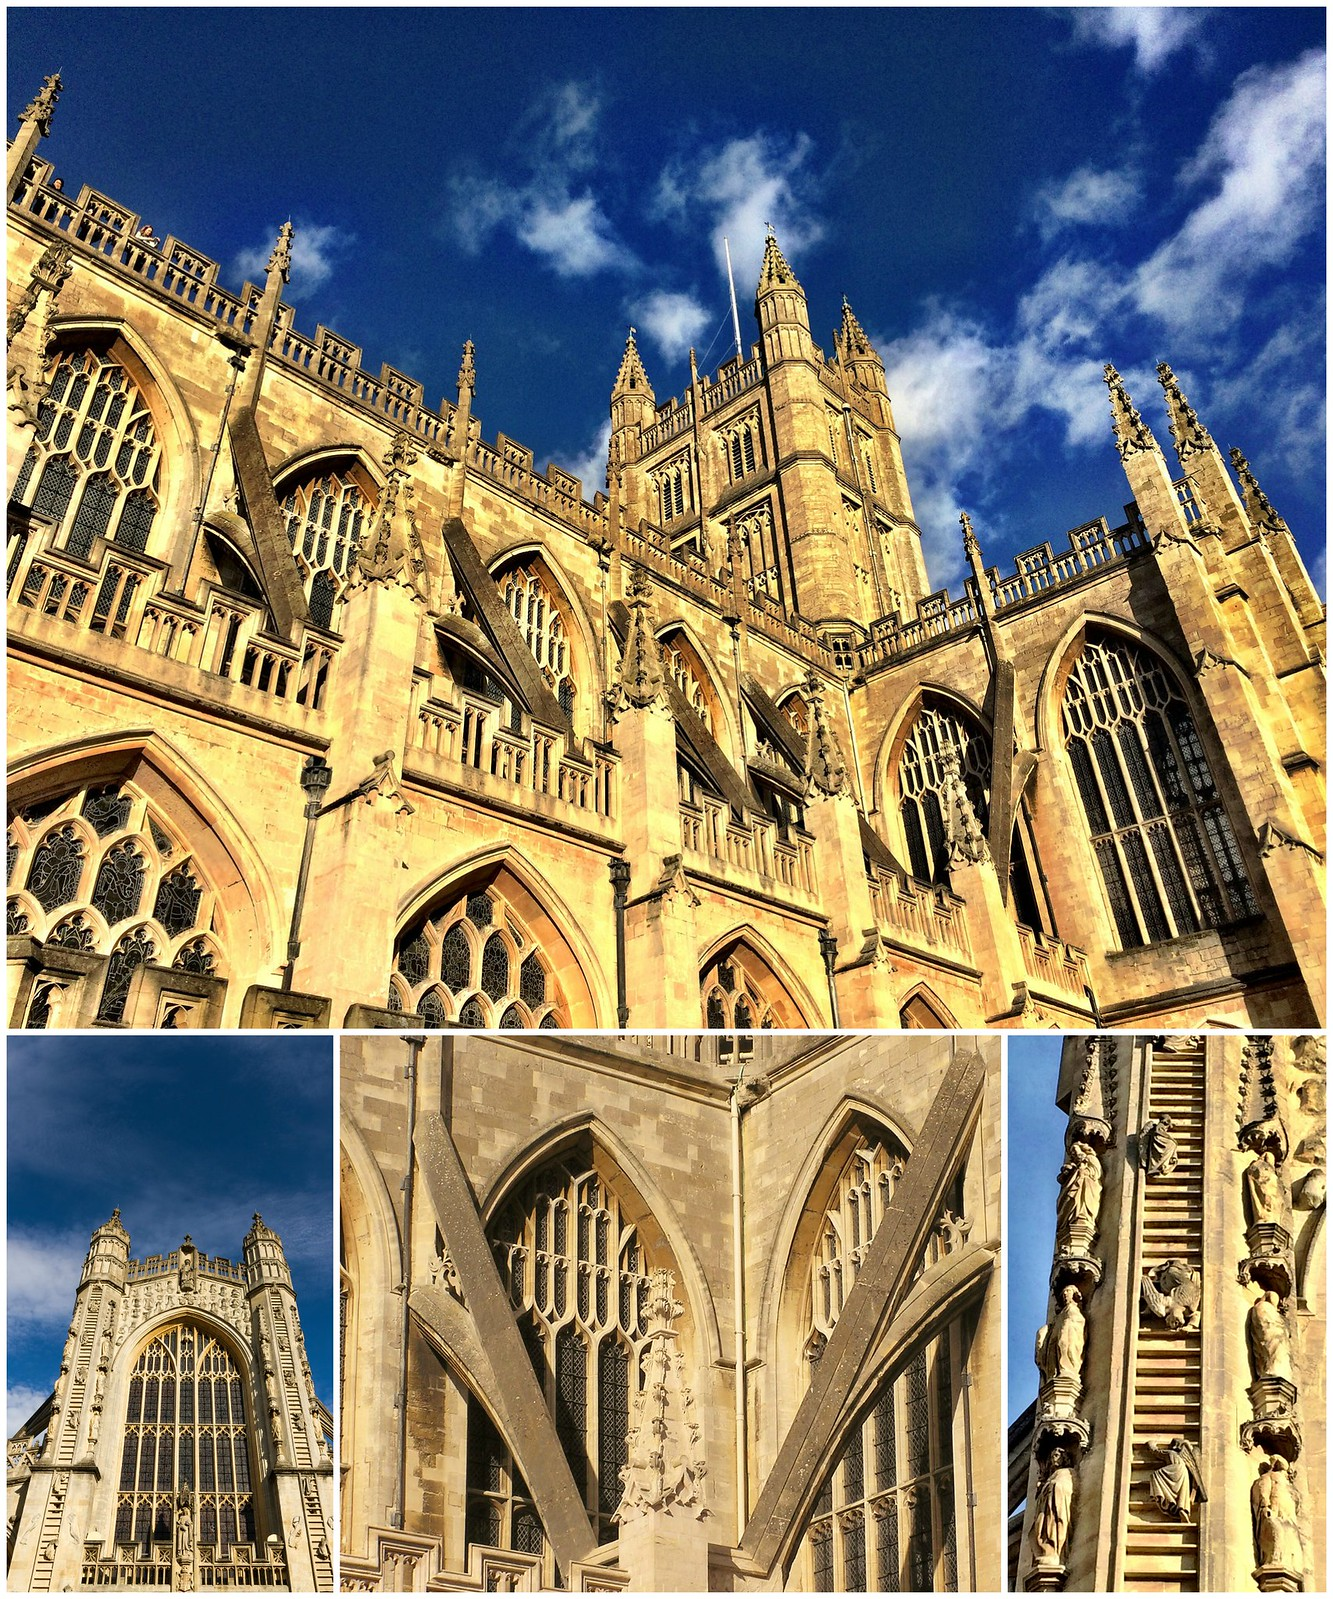 Bath Abbey. Credit: Joanna Penn, flickr; Lee, flickr